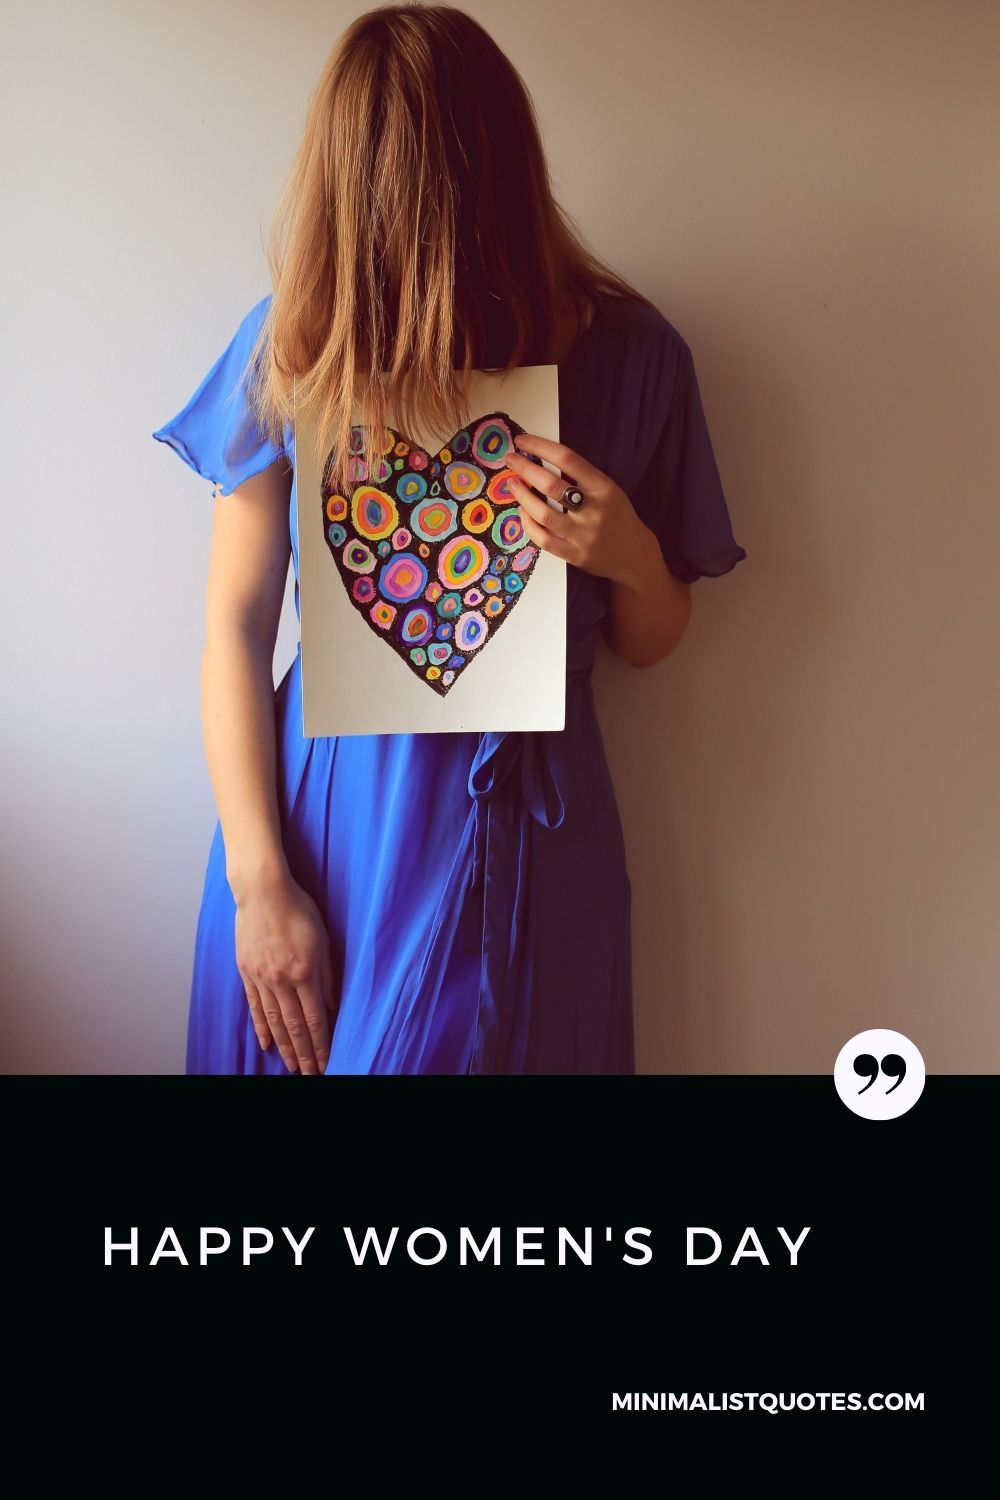 Happy Women's Day Wish & Message With HD Image #heart